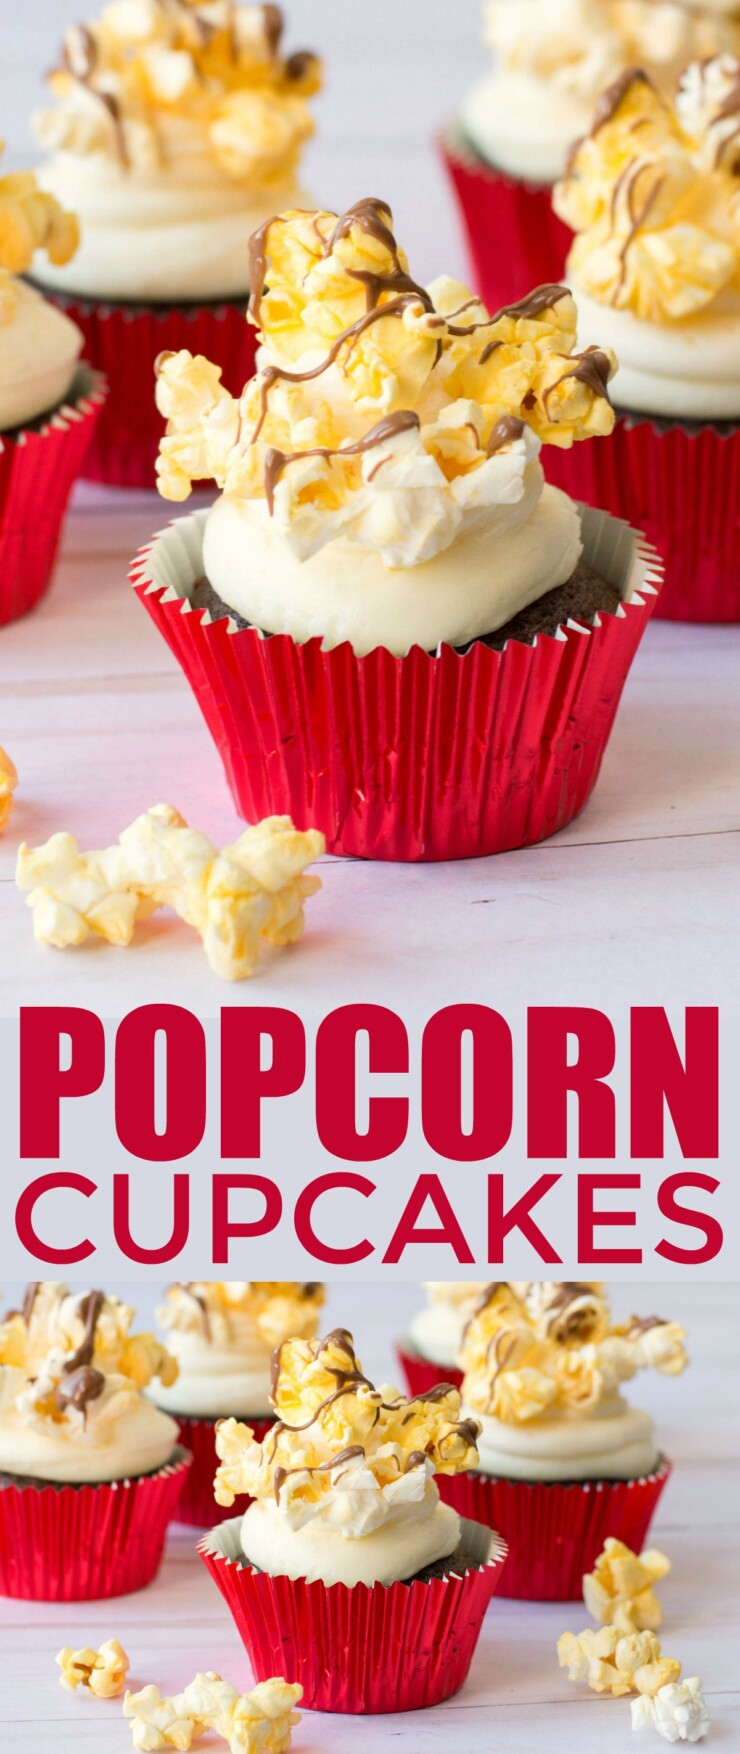 Make family movie night extra special with these adorable Popcorn Cucakes! Perfect for a movie themed birthday party or just for fun.